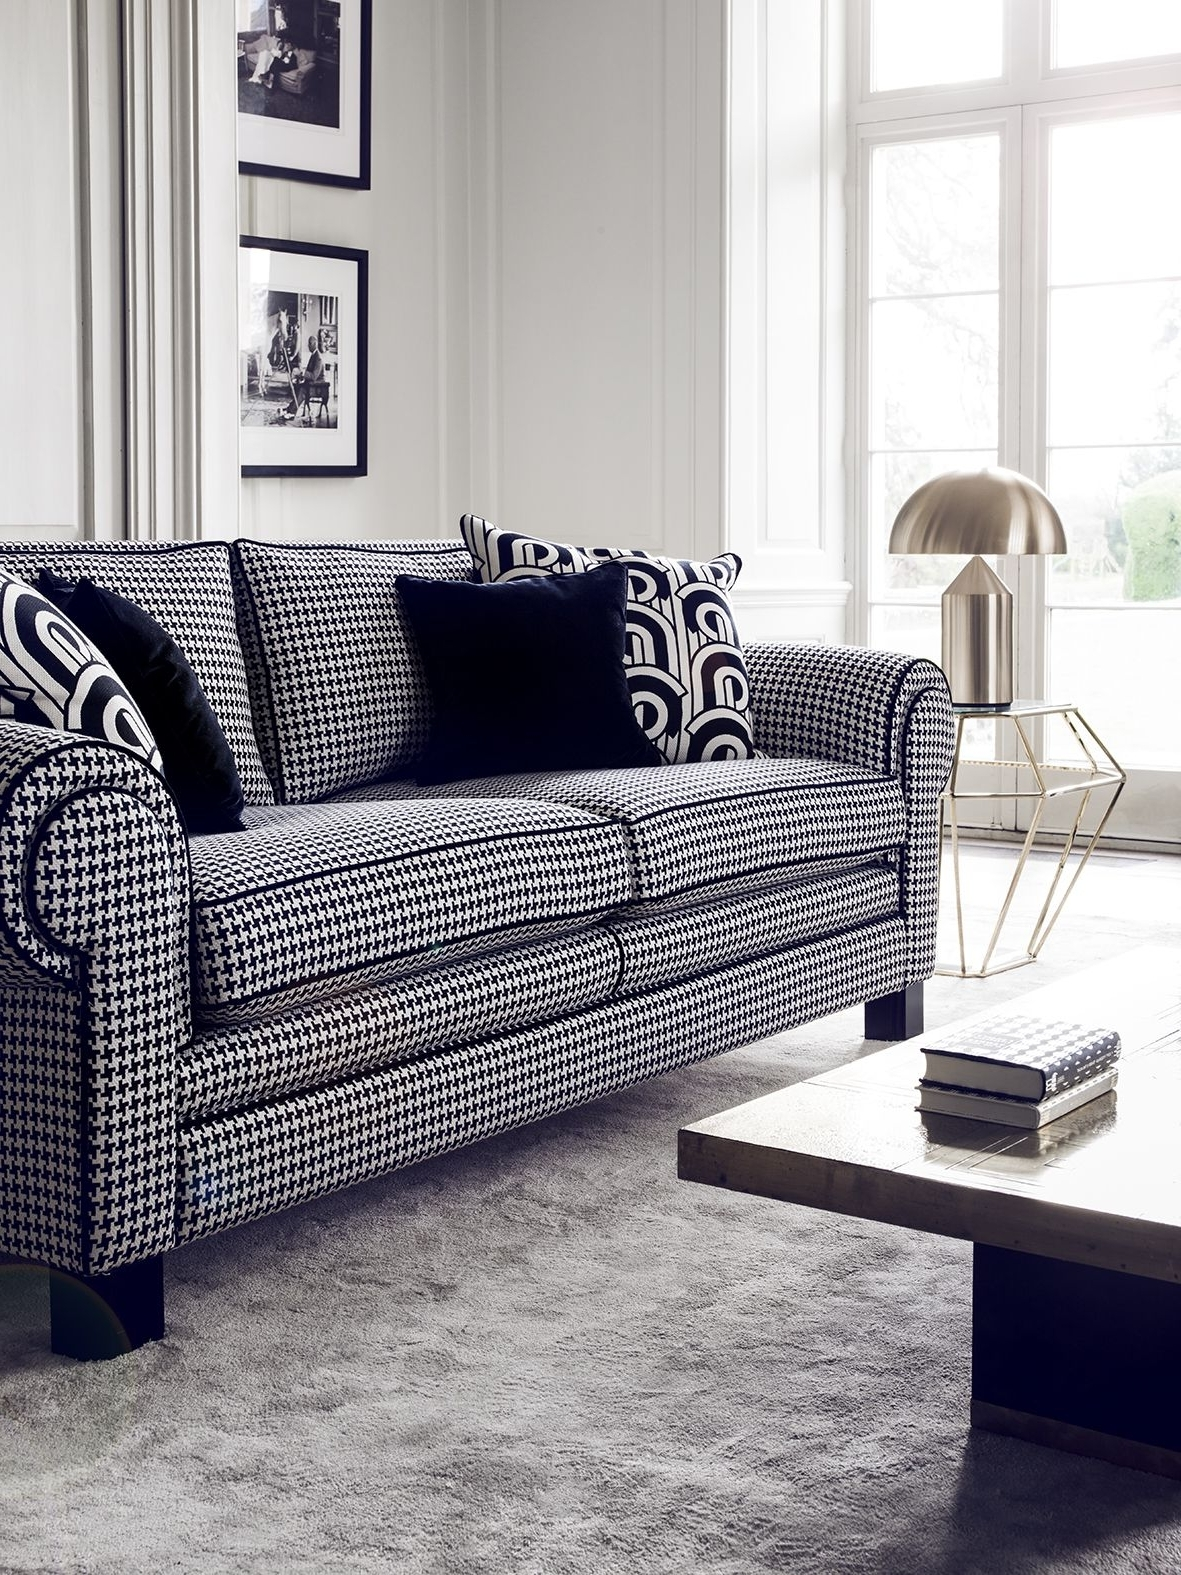 Large Sofa Chairs Intended For Current Coco Large Sofa Expertly Manufacturedbritish Brand And (View 8 of 20)